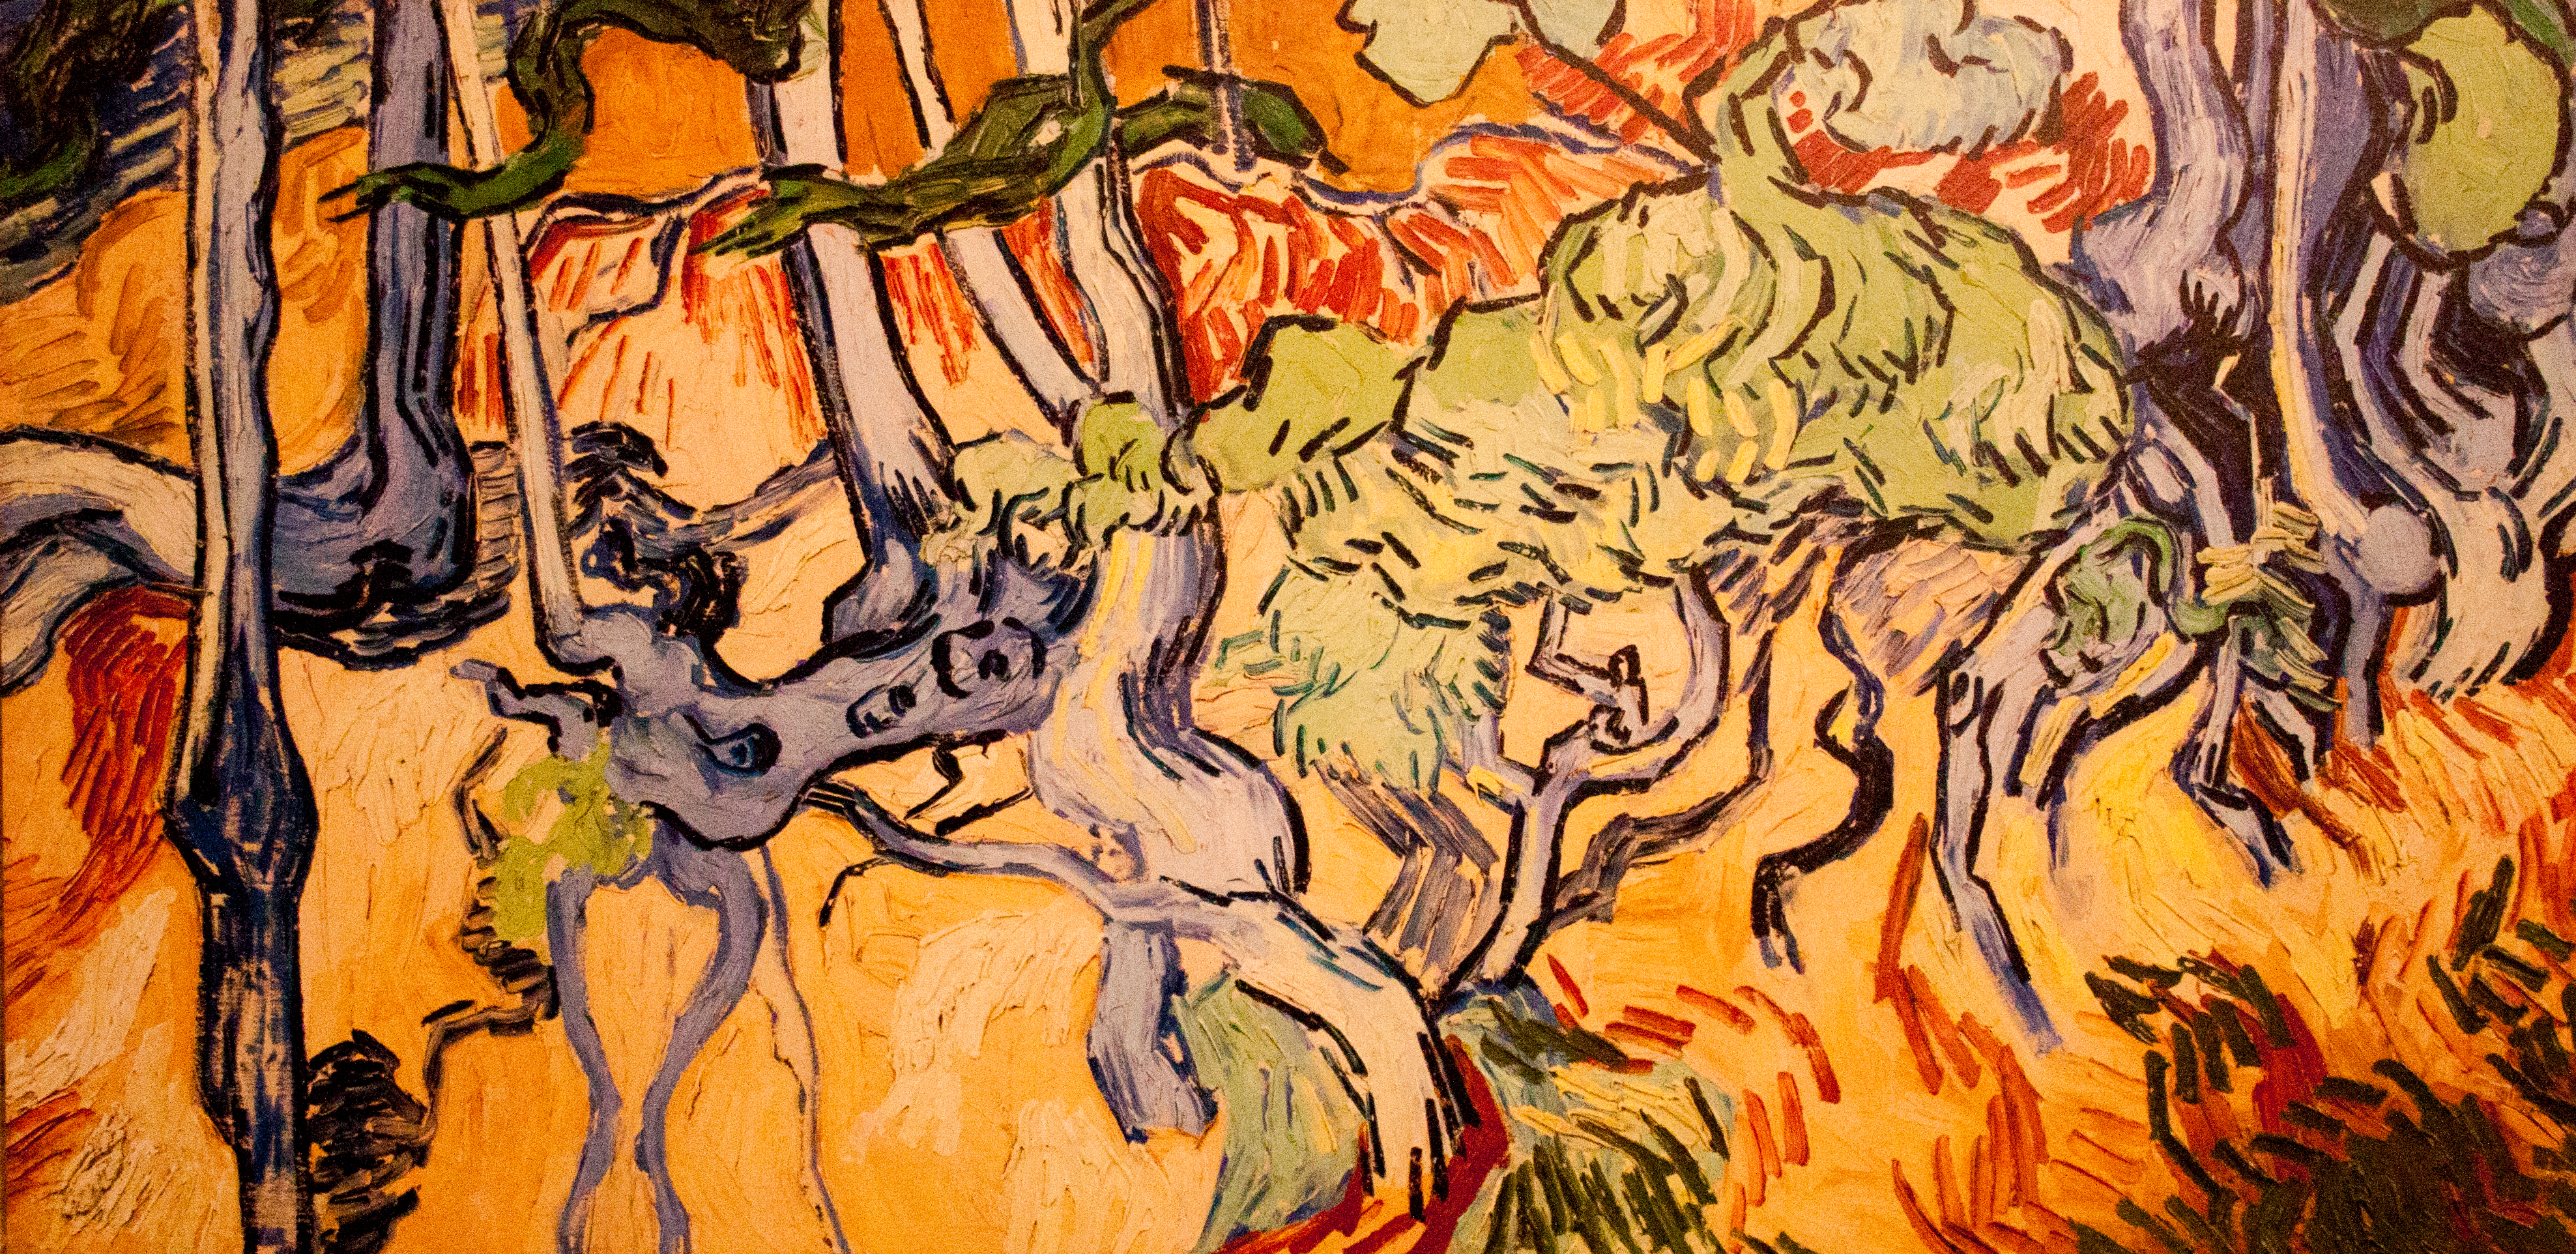 Tree_Roots_and_Trunks_(JH_2113)_-_My_Dream